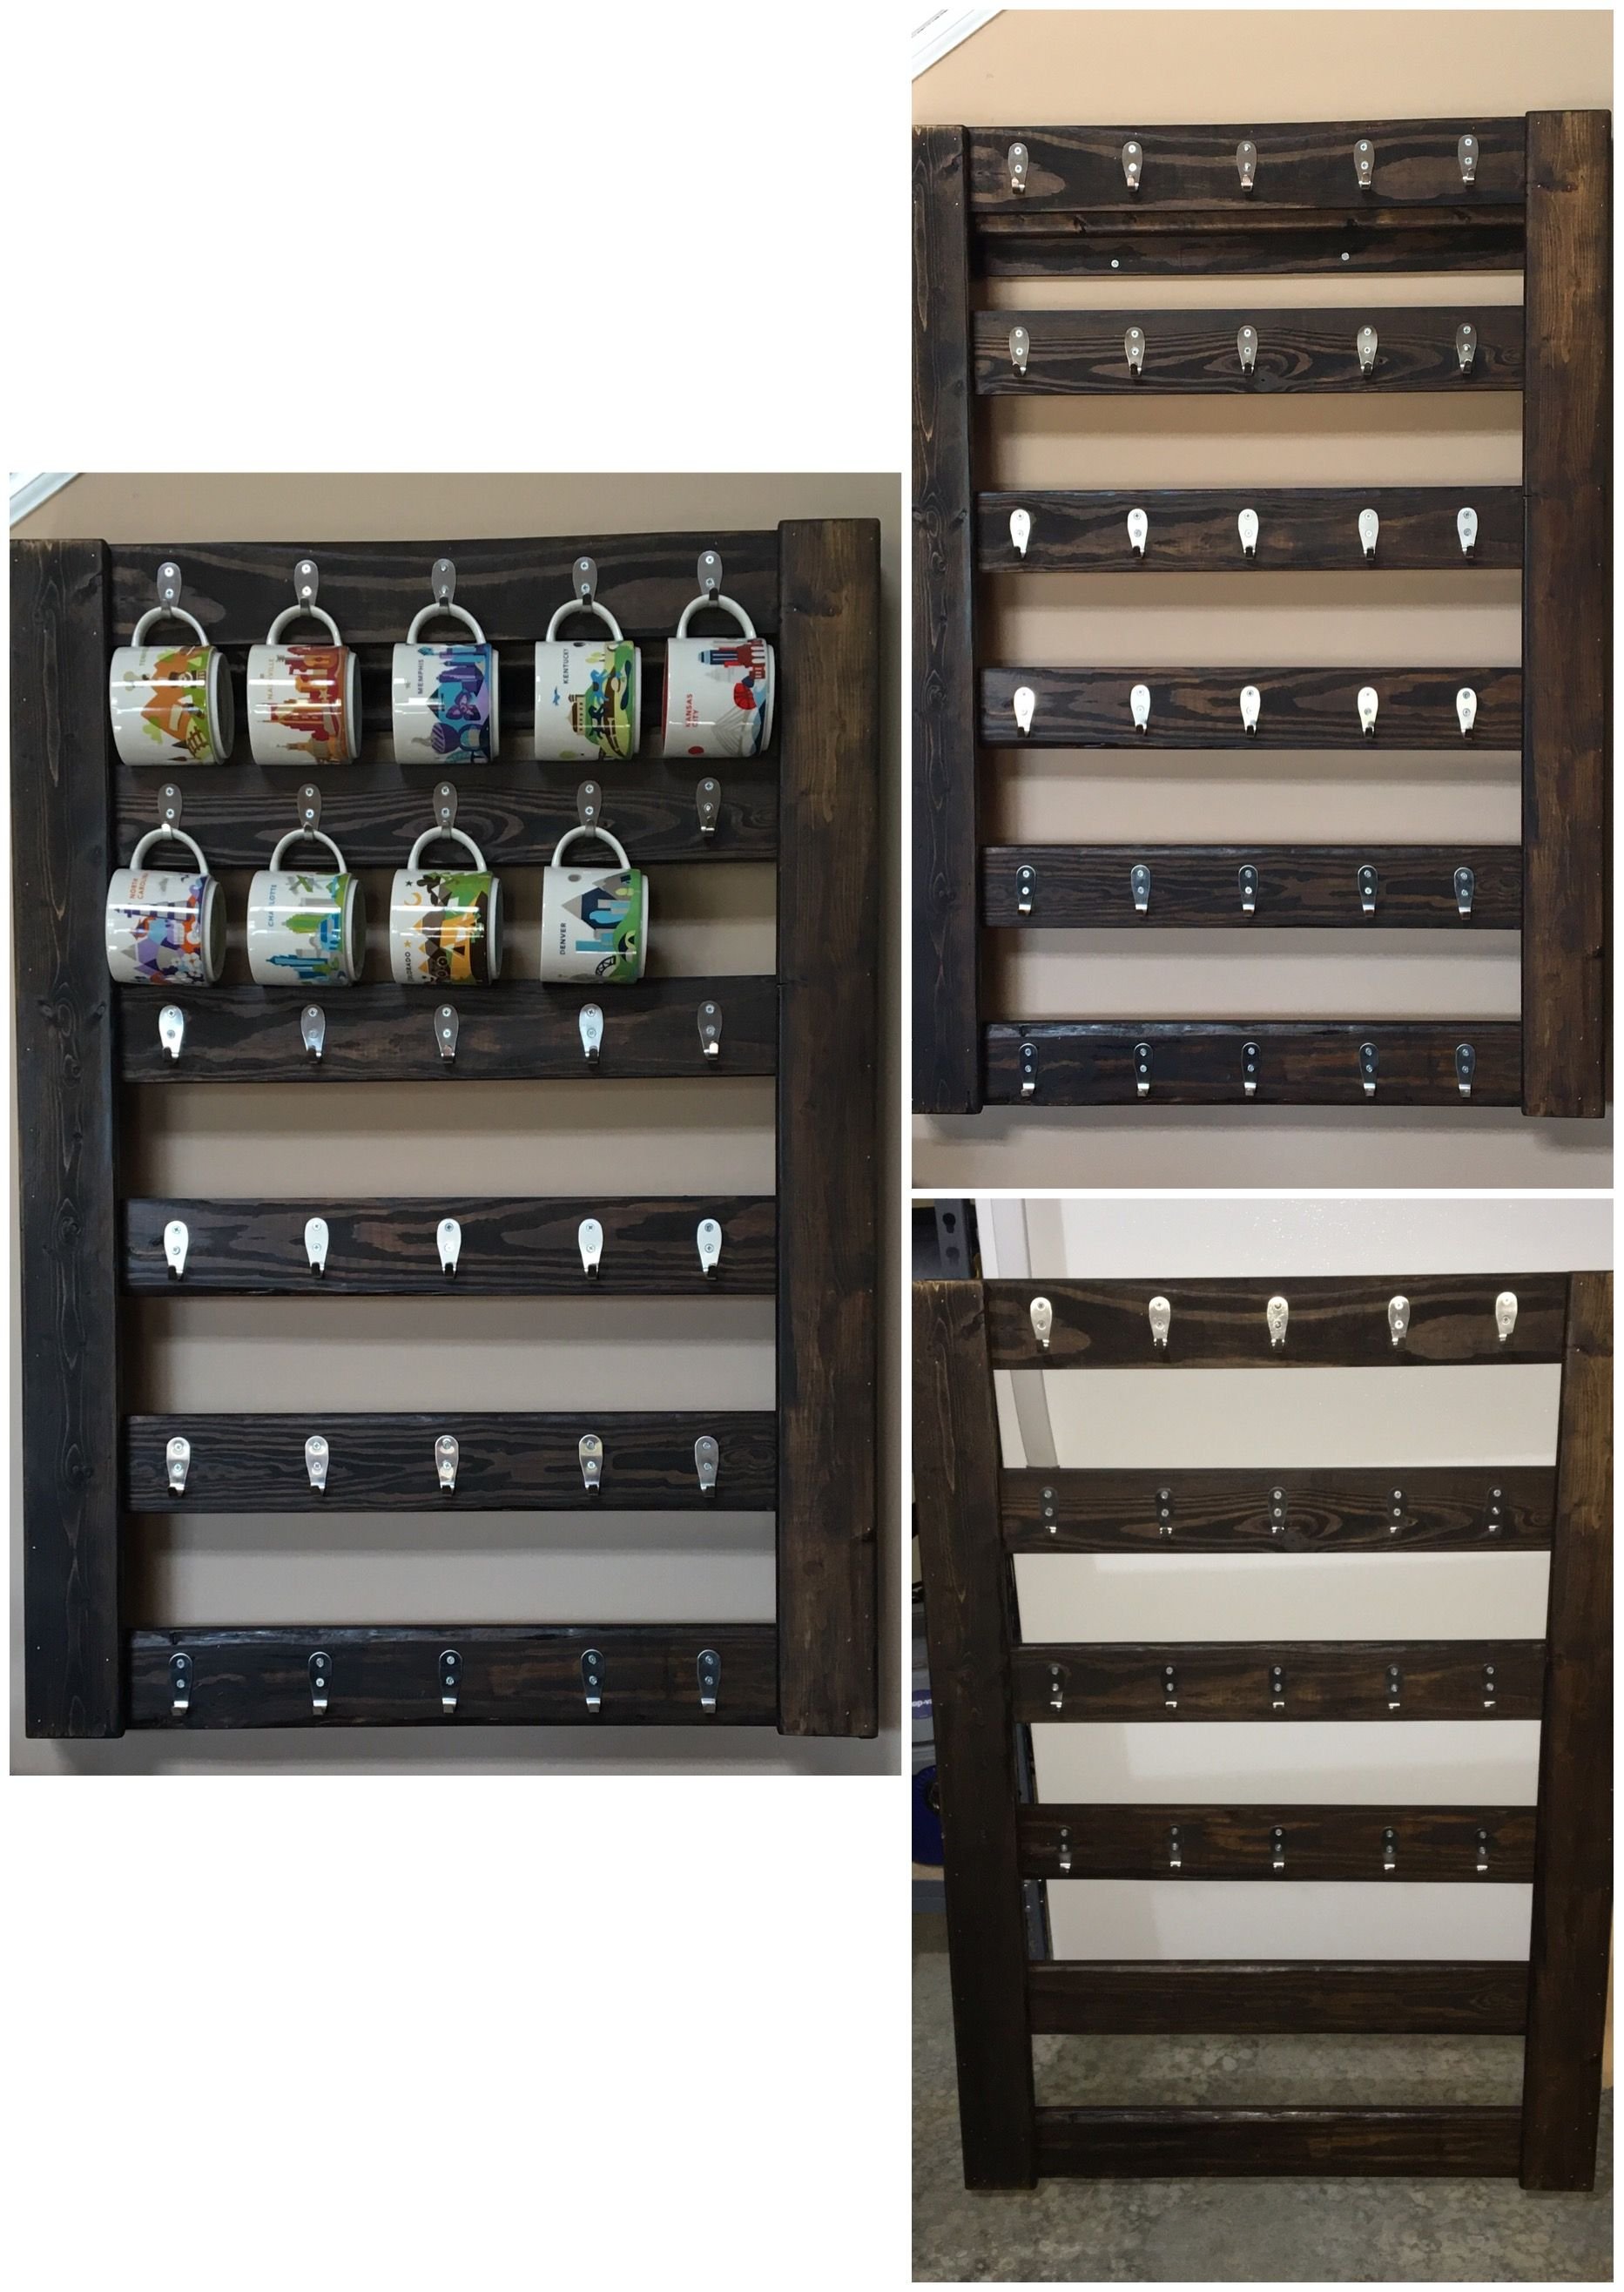 The Coffee Mug Display I Built To Show Off My Collection Of Starbucks You Are Here Cups Plan Get A From Every Trip Take Until Is